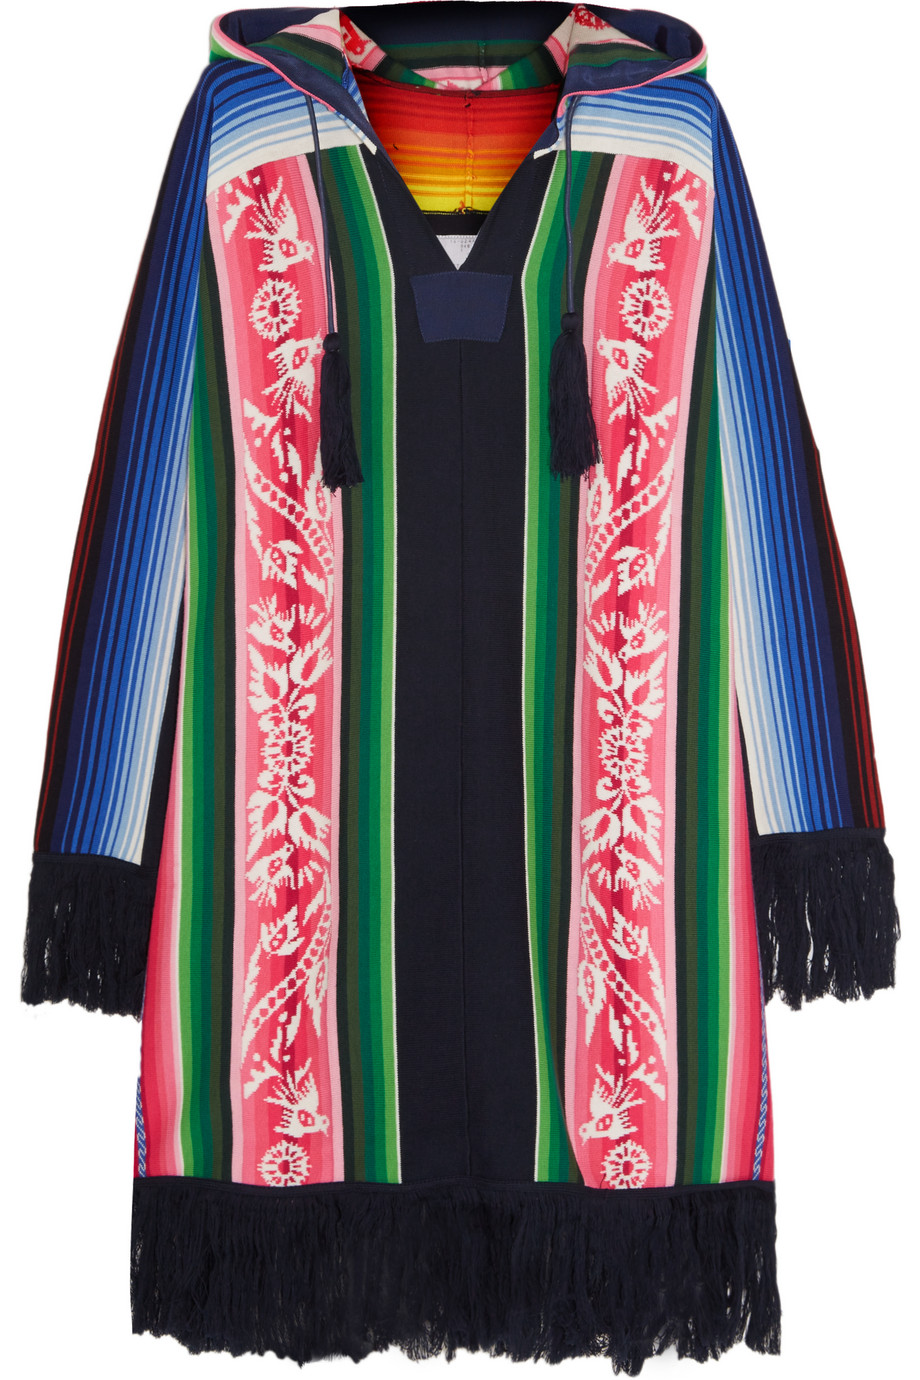 Sacai Fringed Printed Cotton Hooded Poncho, Pink, Women's, Size: 4